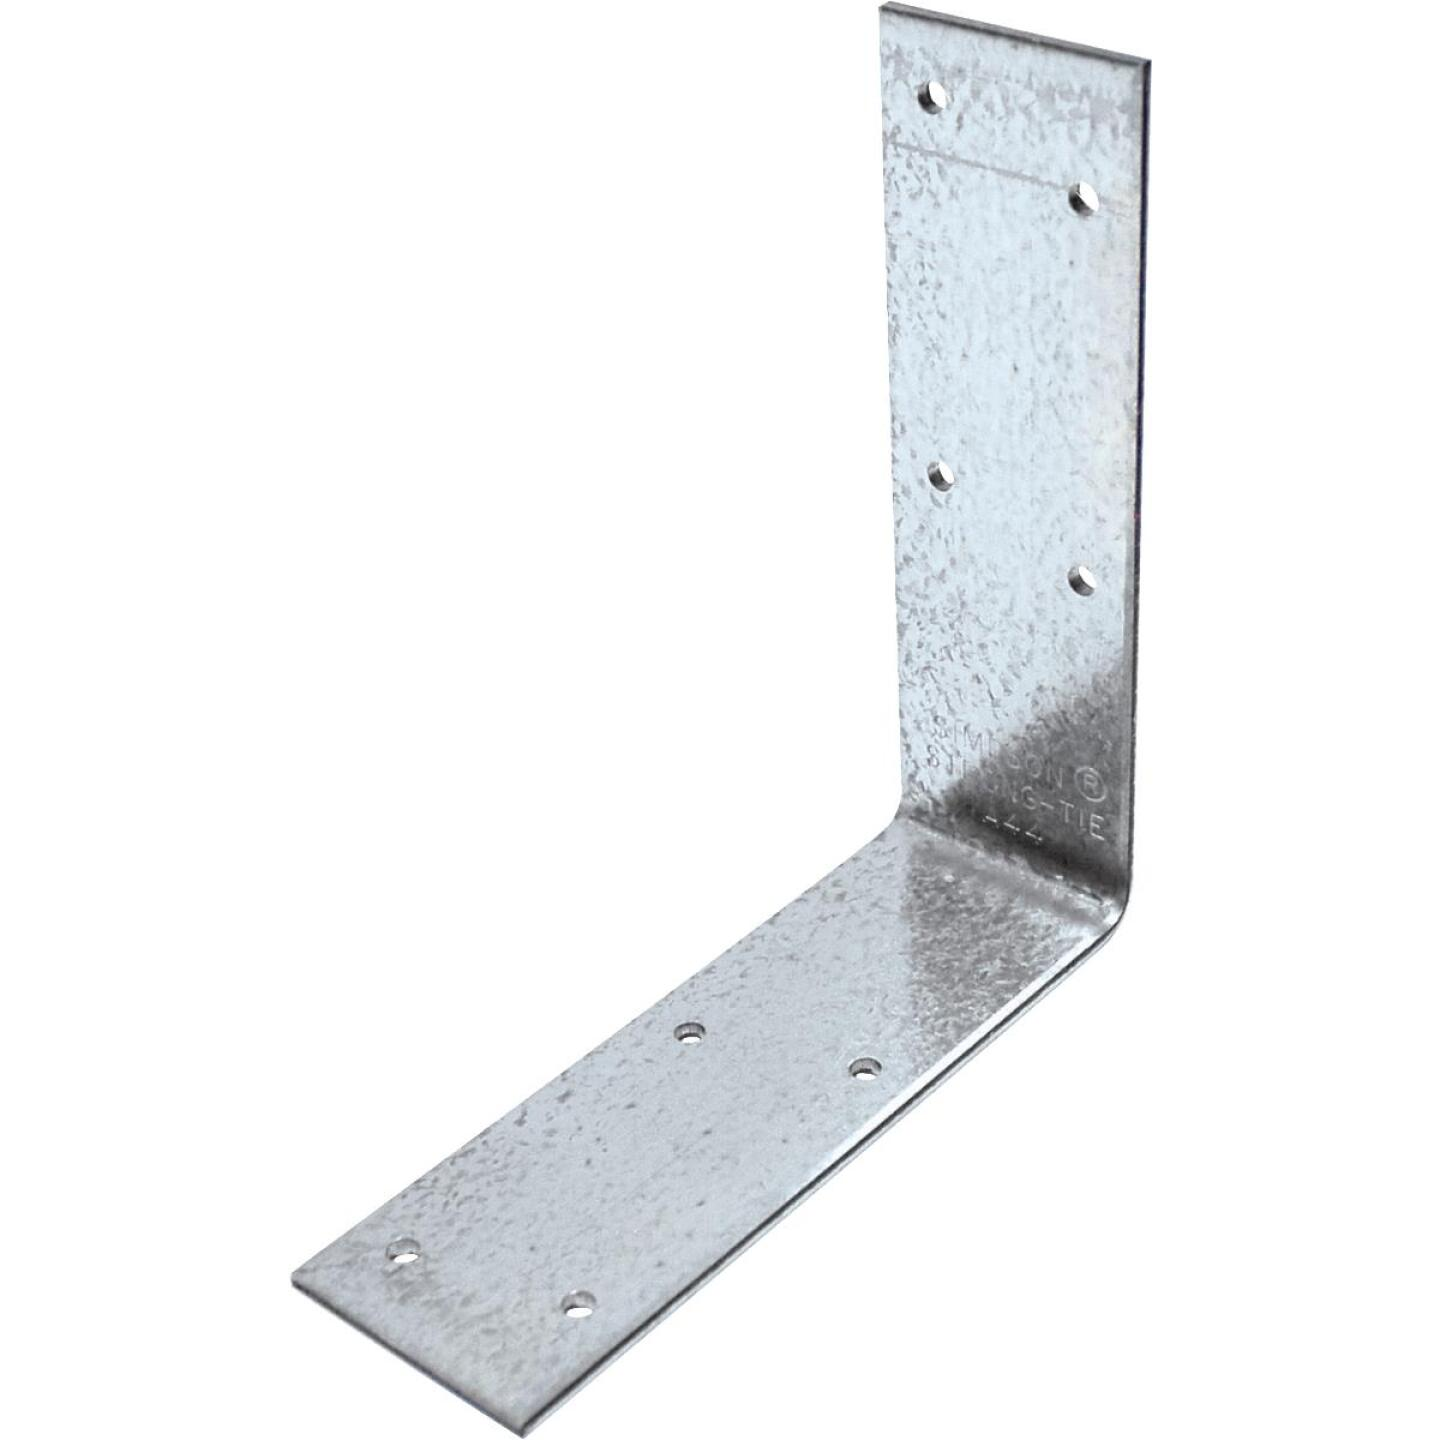 Simpson Strong-Tie 4-9/16 In. x 4-3/8 In. x 1-1/2 In. Galvanized Steel 12 ga Reinforcing Angle Image 1